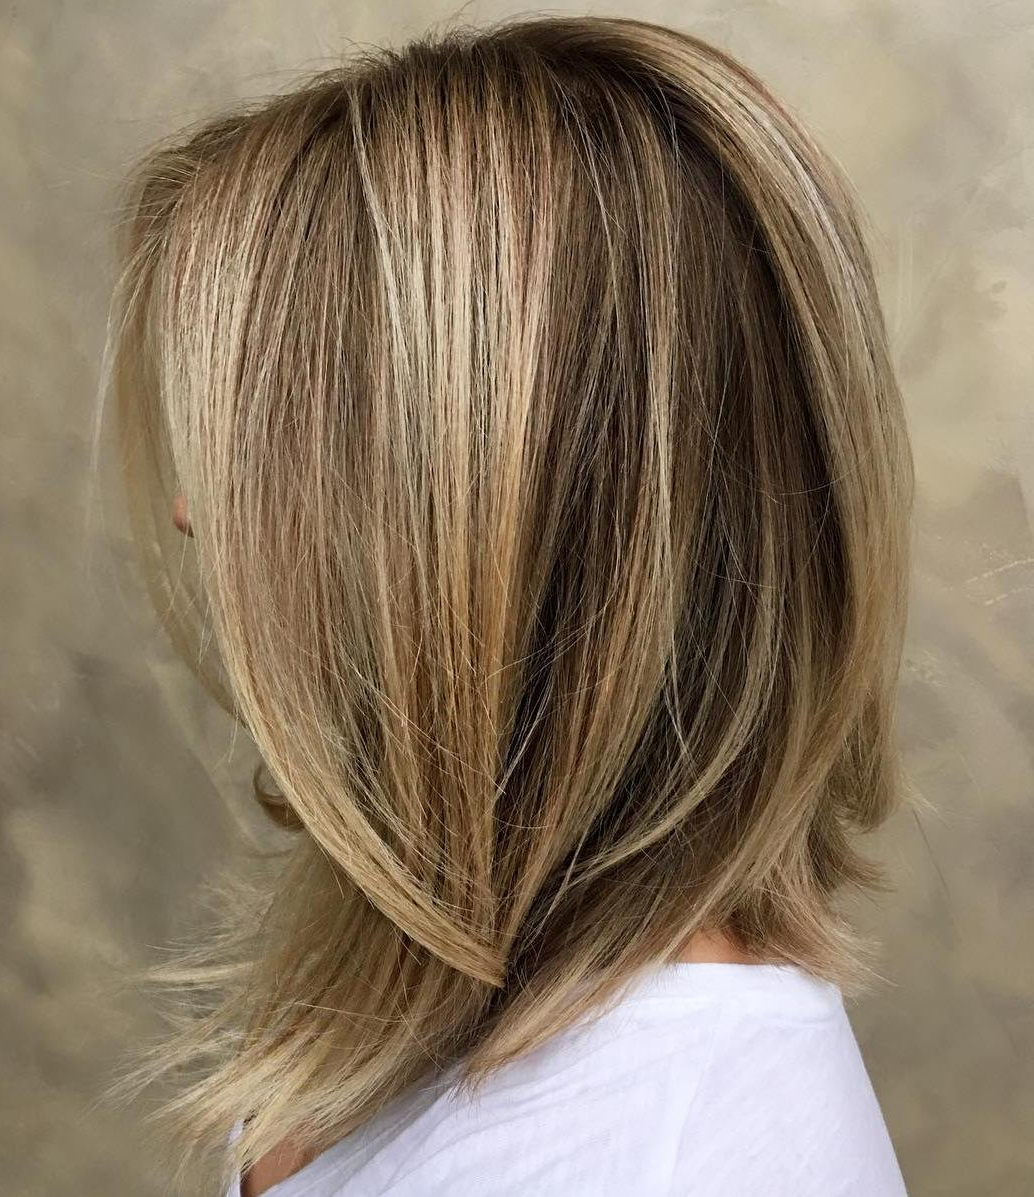 60 Inspiring Long Bob Hairstyles And Lob Haircuts 2018 For Disheveled Burgundy Brown Bob Hairstyles (Gallery 10 of 25)